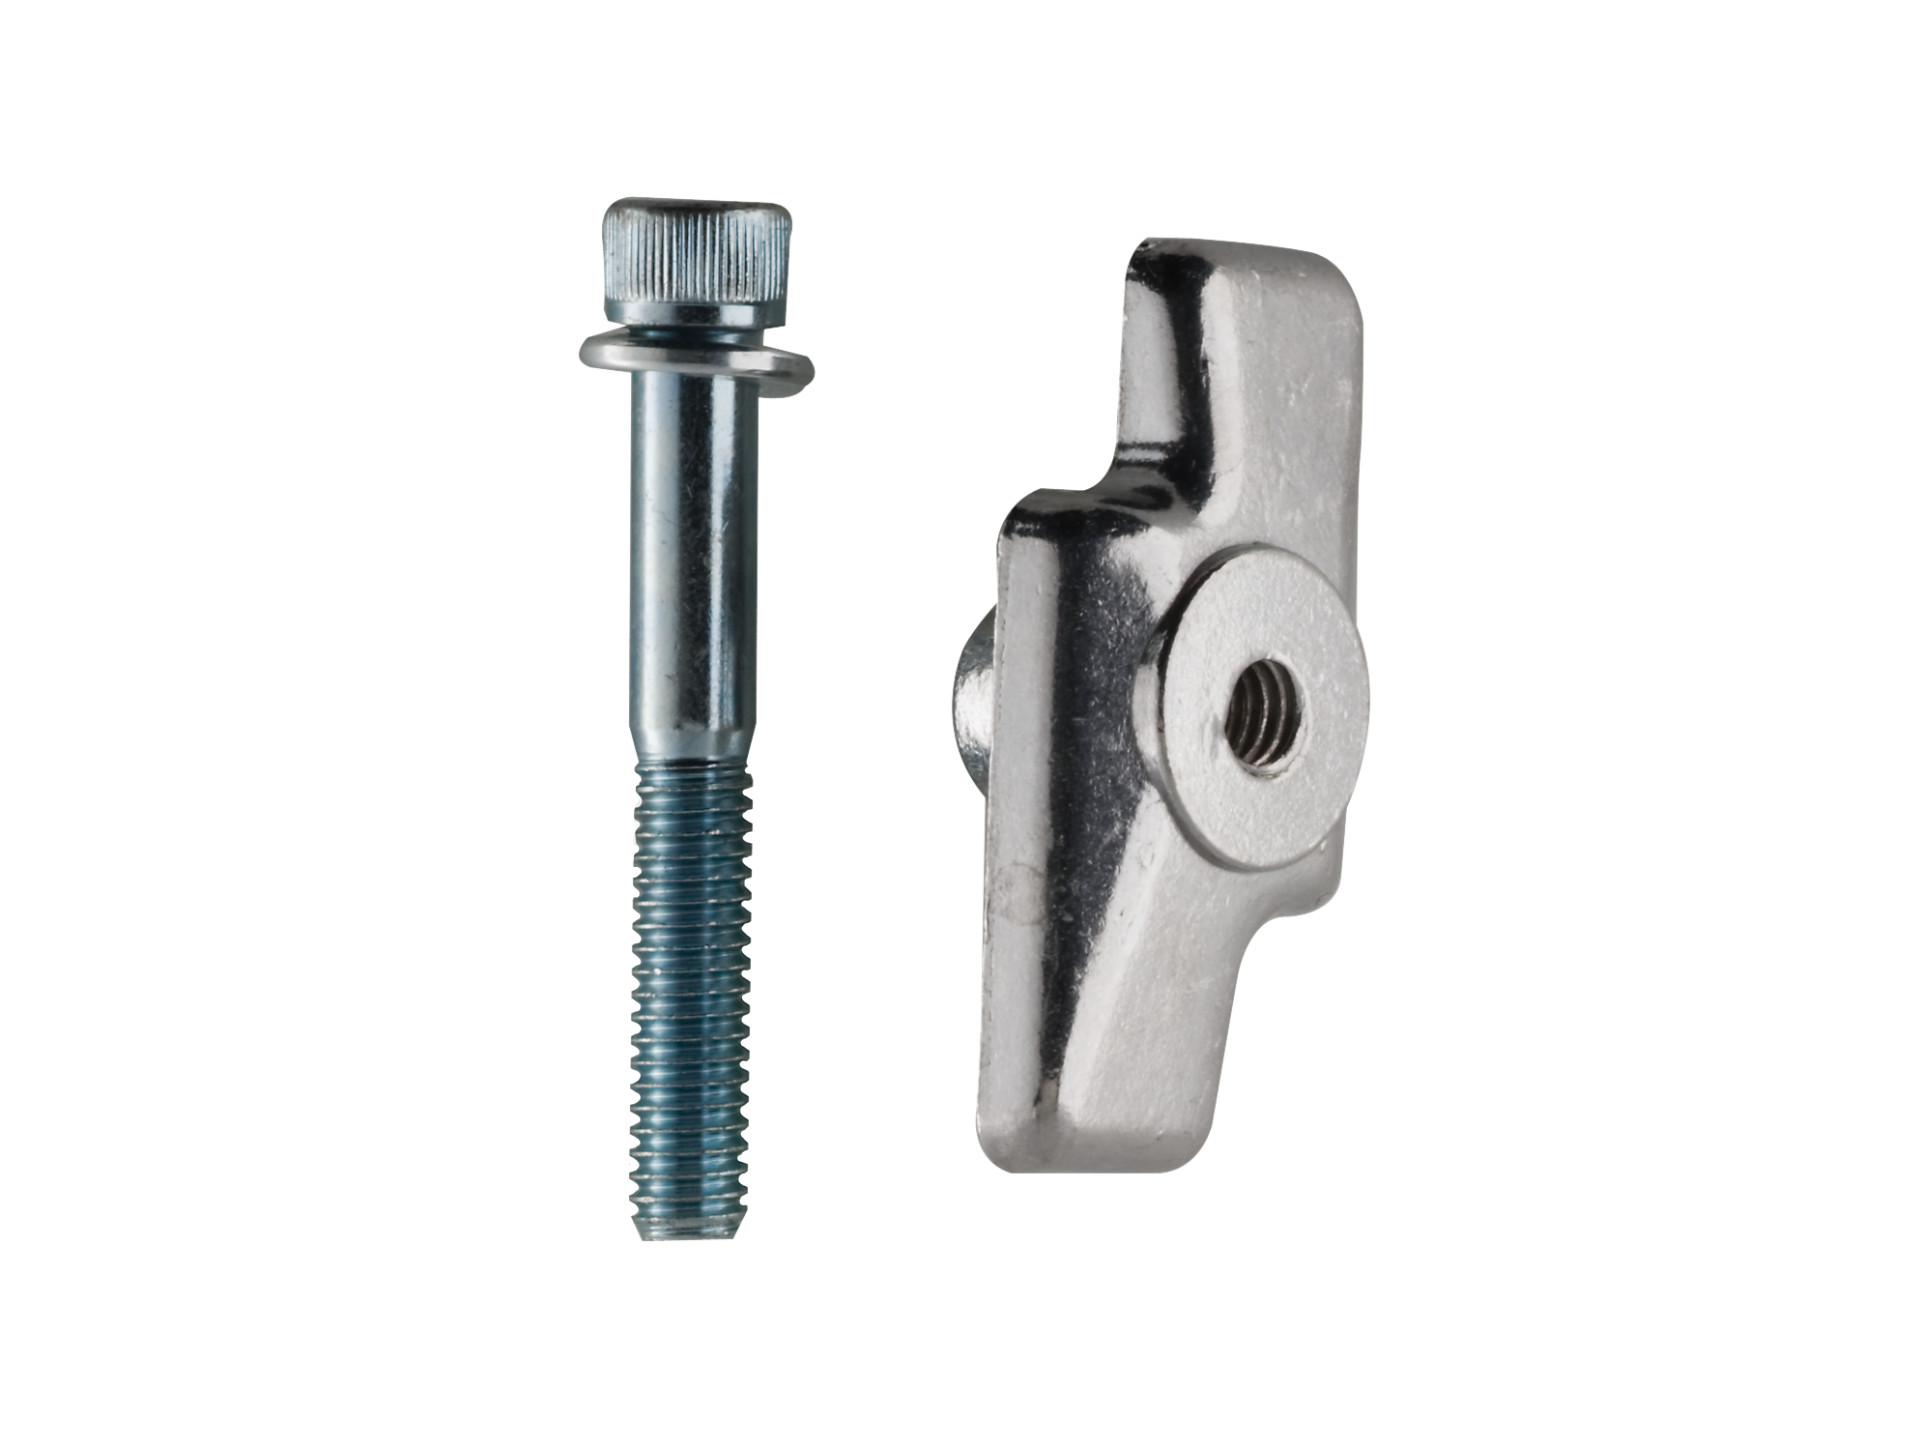 BOLT AND WASHER KIT FOR BETTER CLEARANCE GREENFIELD KICKSTAND TOP PLATE